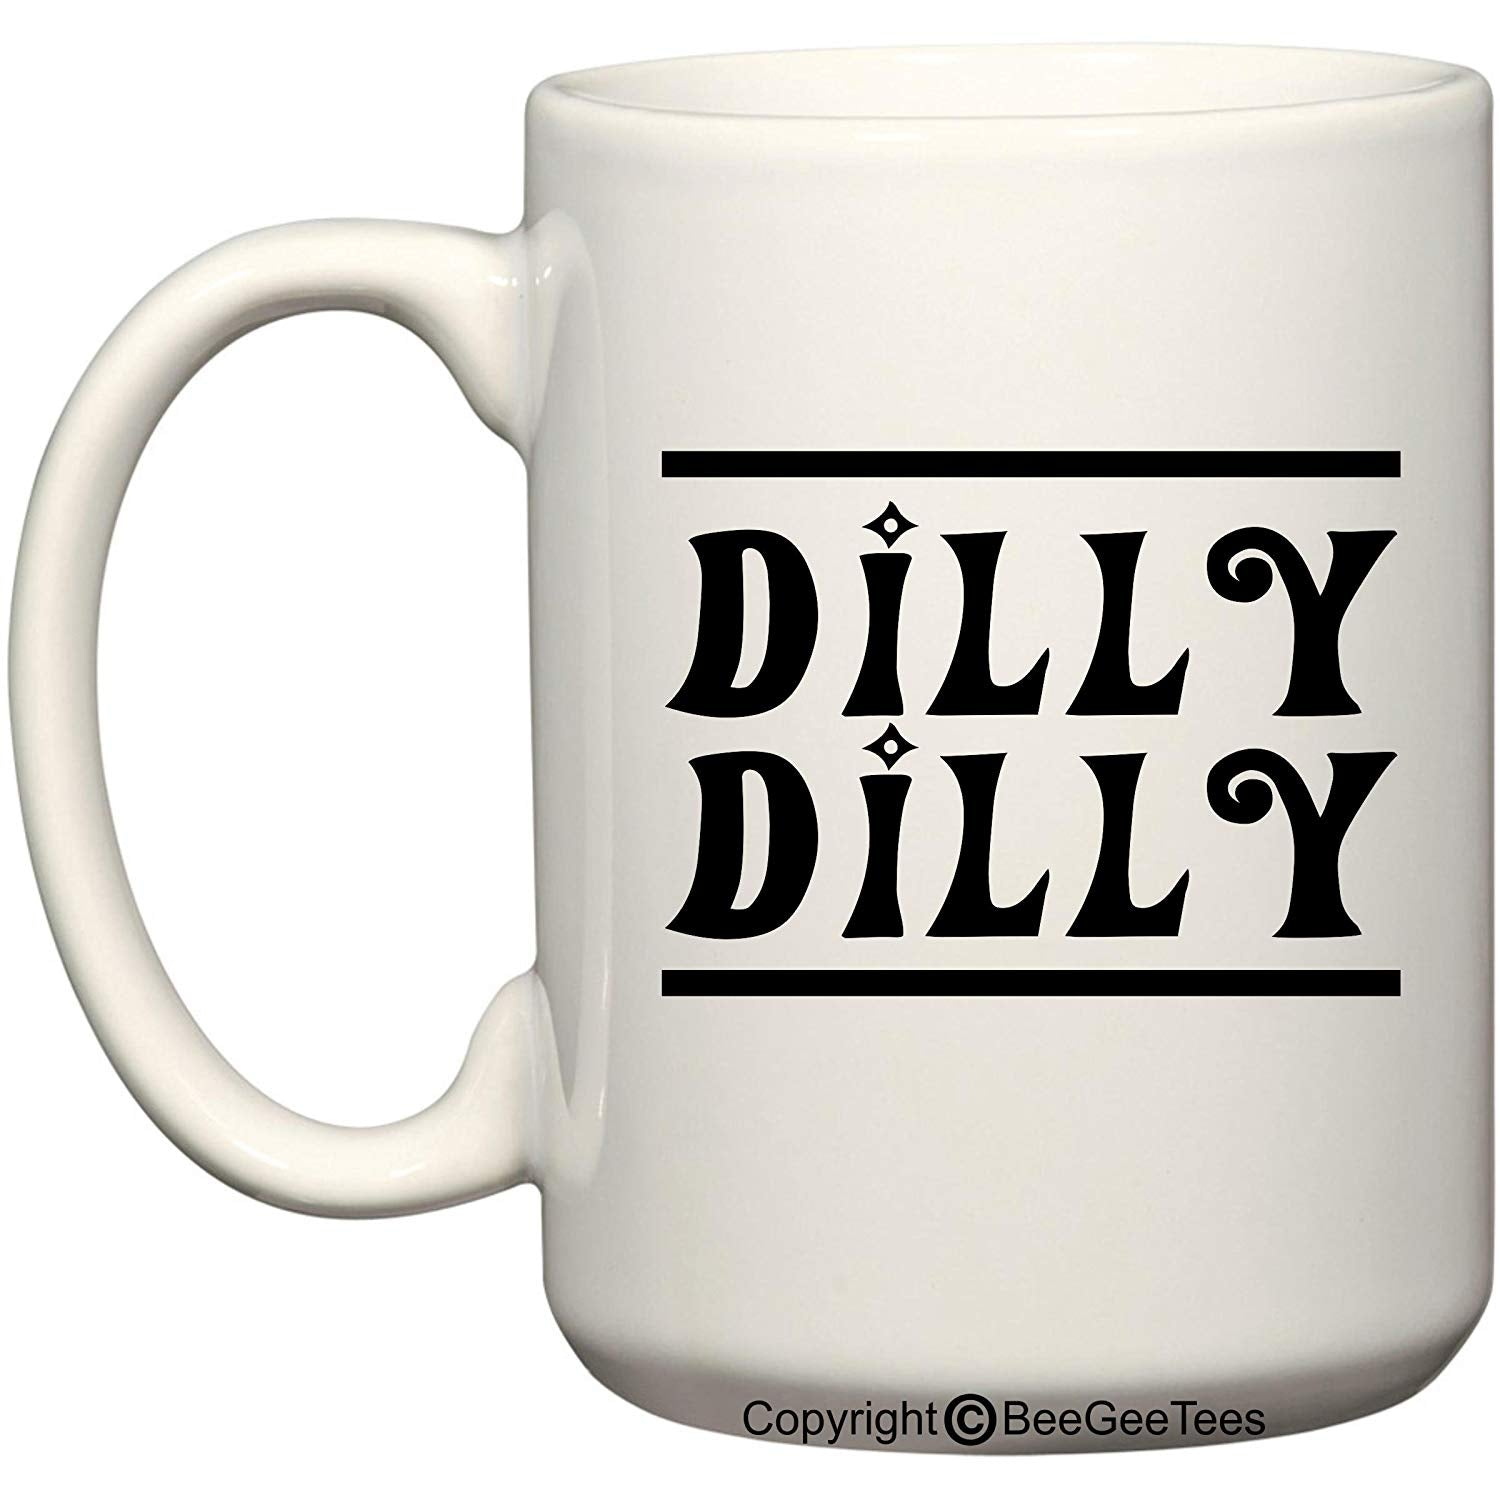 Dilly Dilly Bud Light Parody Game of Thrones Inspired Funny Coffee Mug or Tea Cup by BeeGeeTees